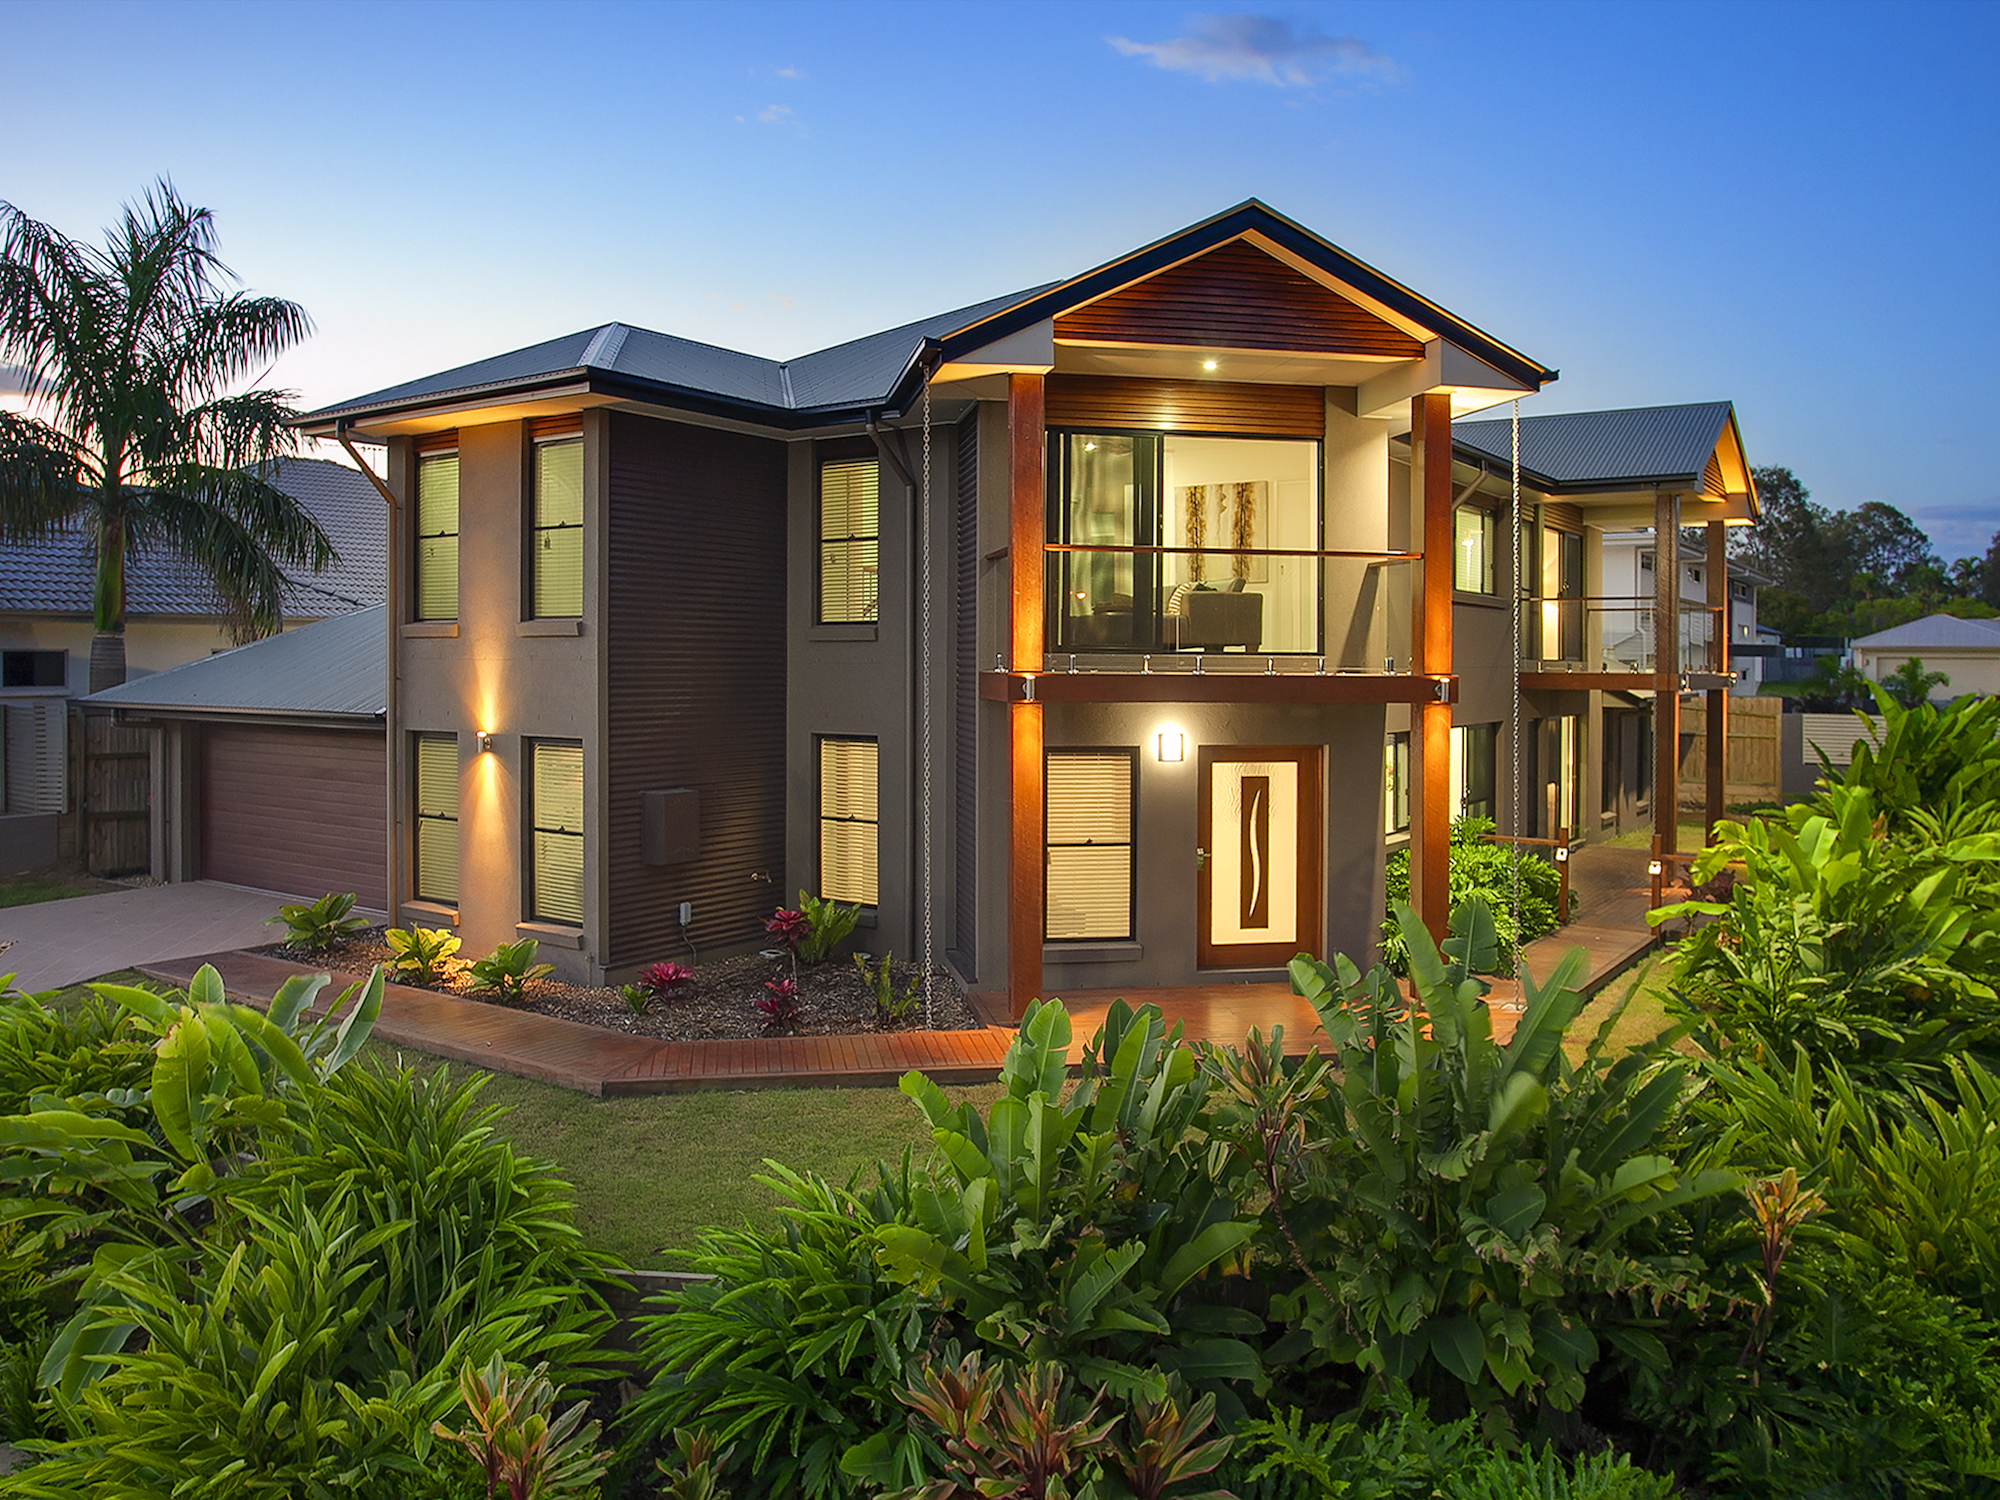 Recently sold kelrow constructions pty ltd for Best house designs sydney